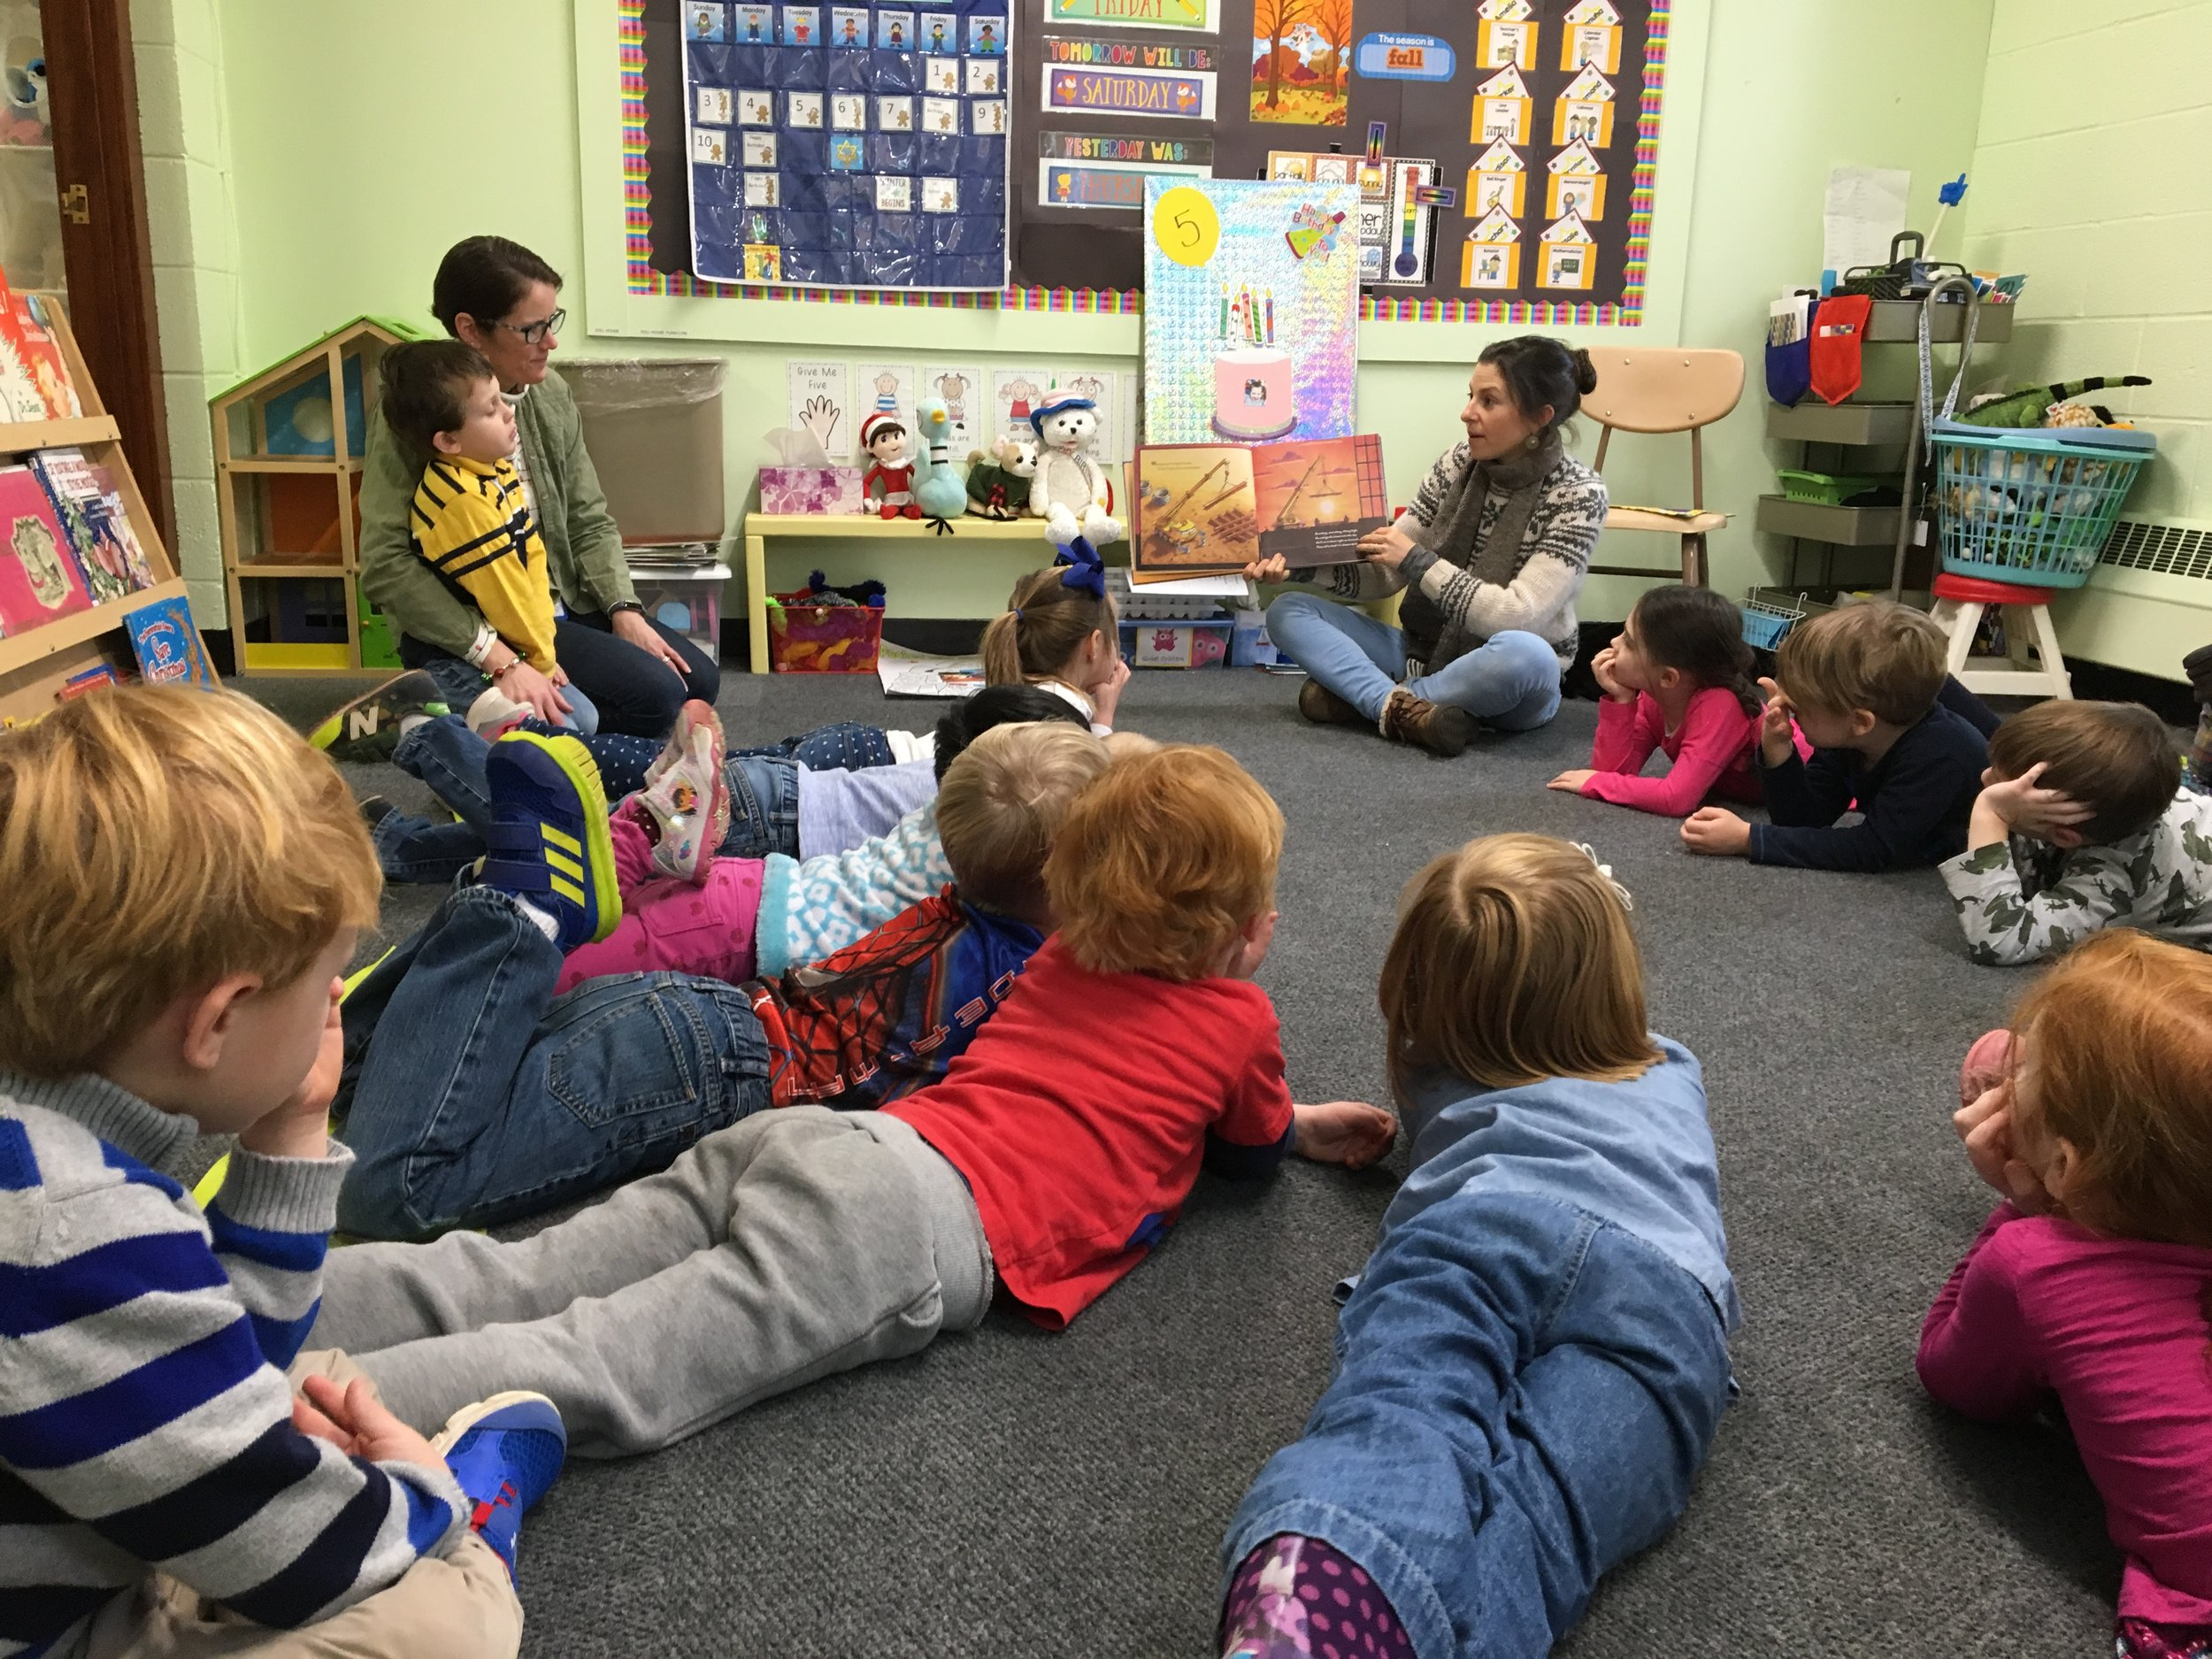 During circle time, children get to listen to stories, sing songs and work on many valuable skills, including mathematical equations, patterning, name recognition and more.